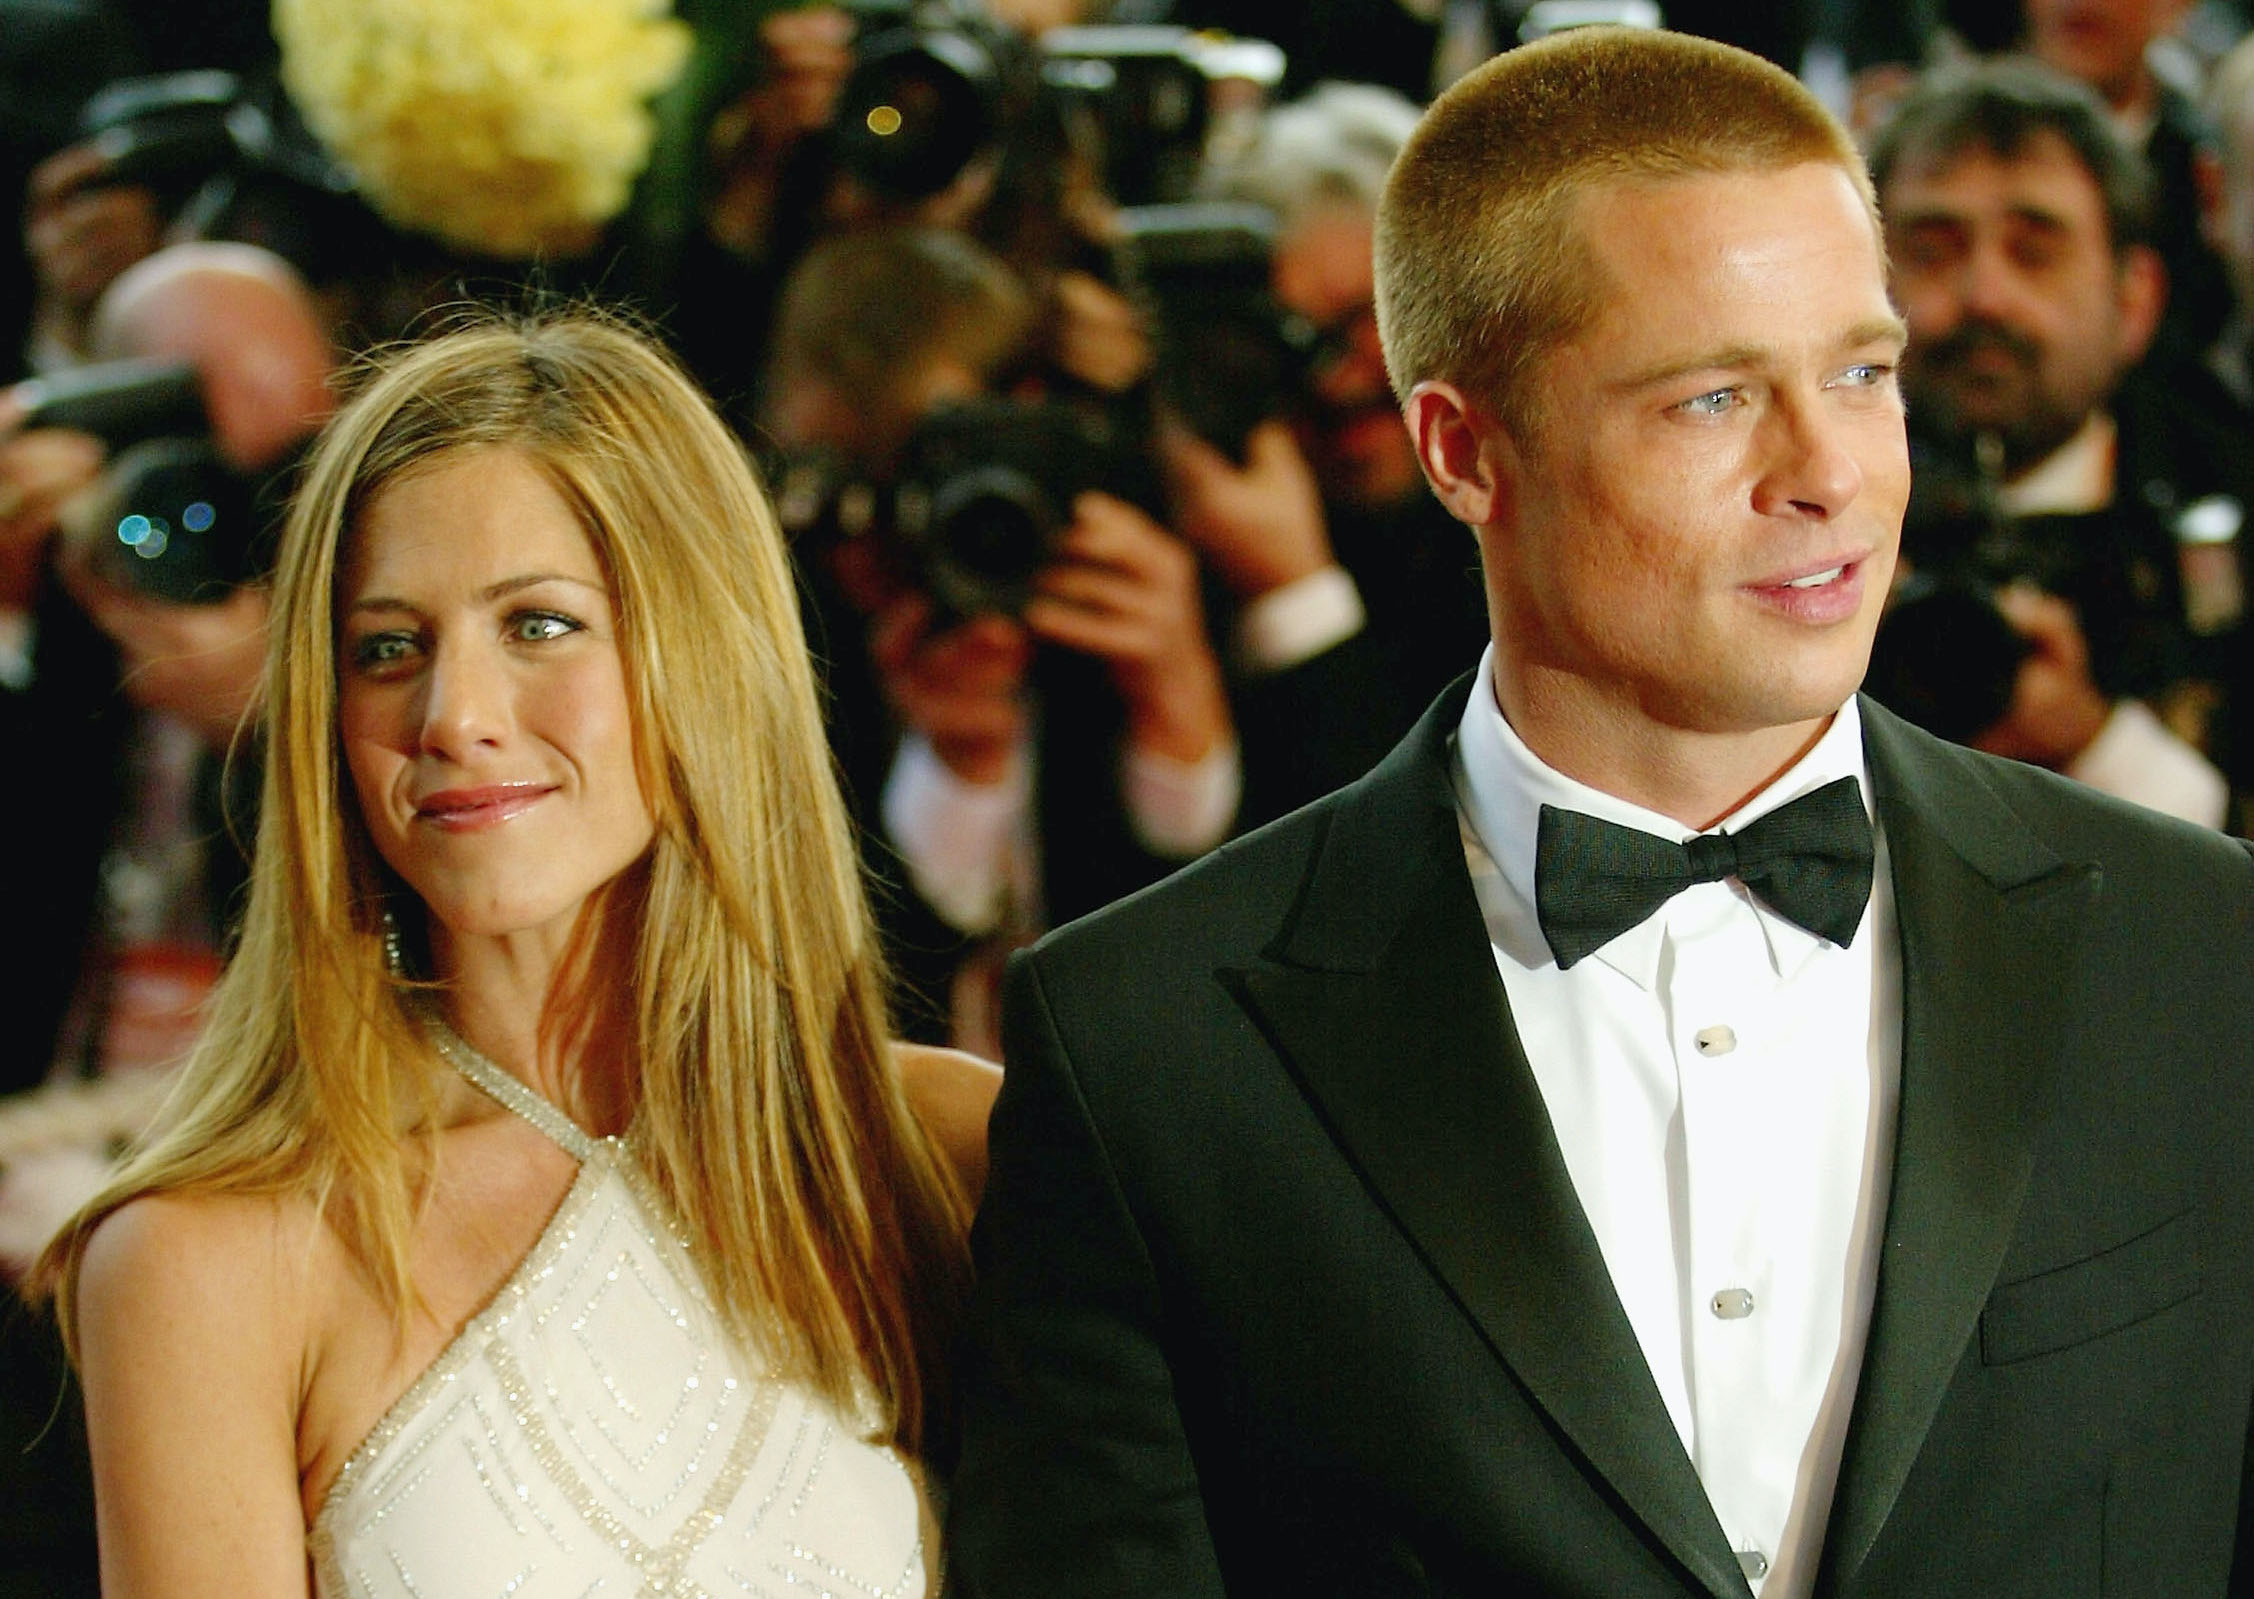 Where Jennifer Aniston And Brad Pitt S Relationship Stands In 2020